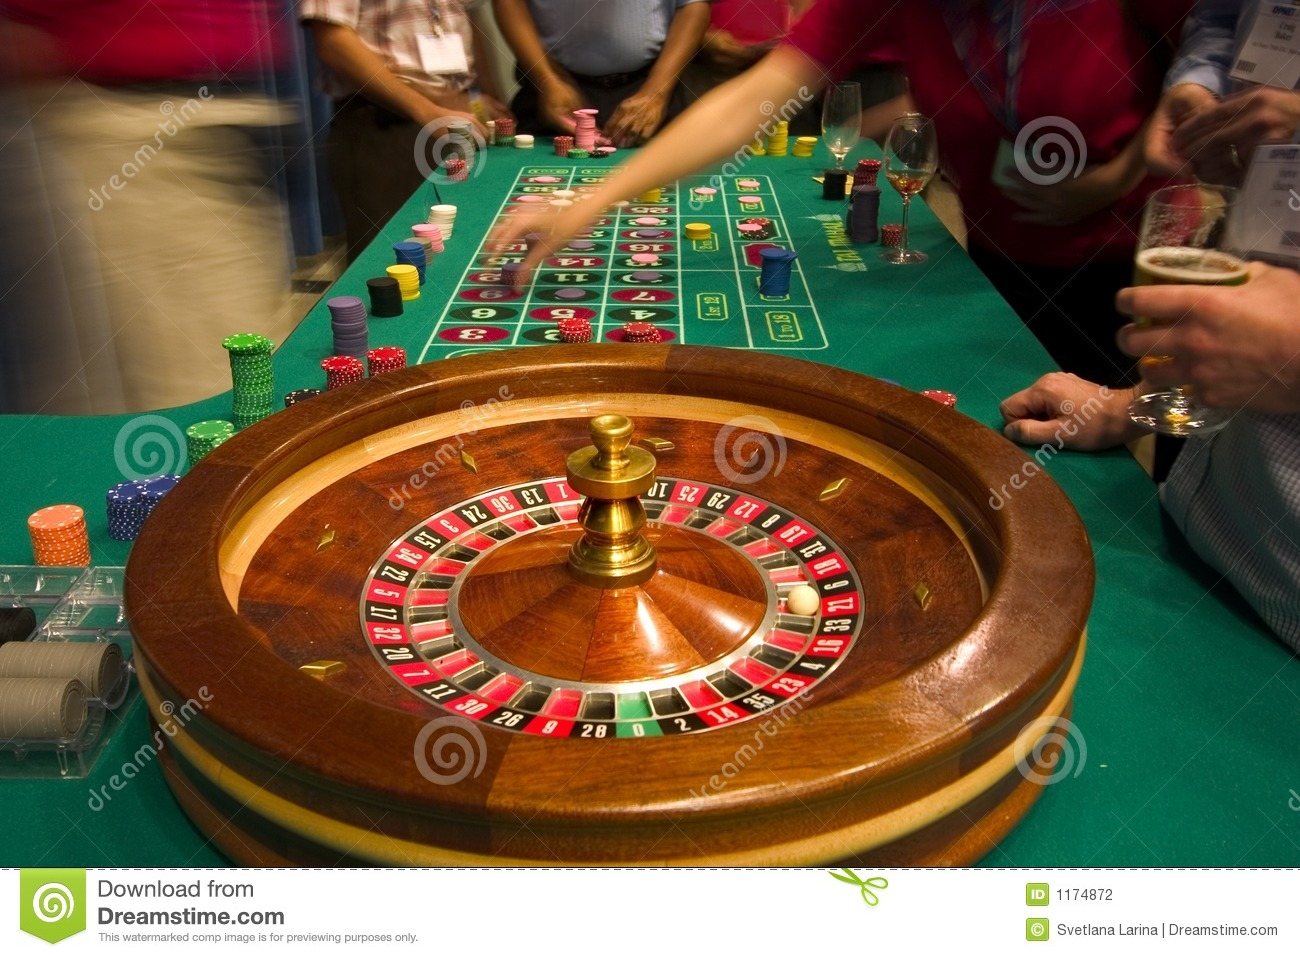 Fabricant table roulette casino little marcel cartable a roulette